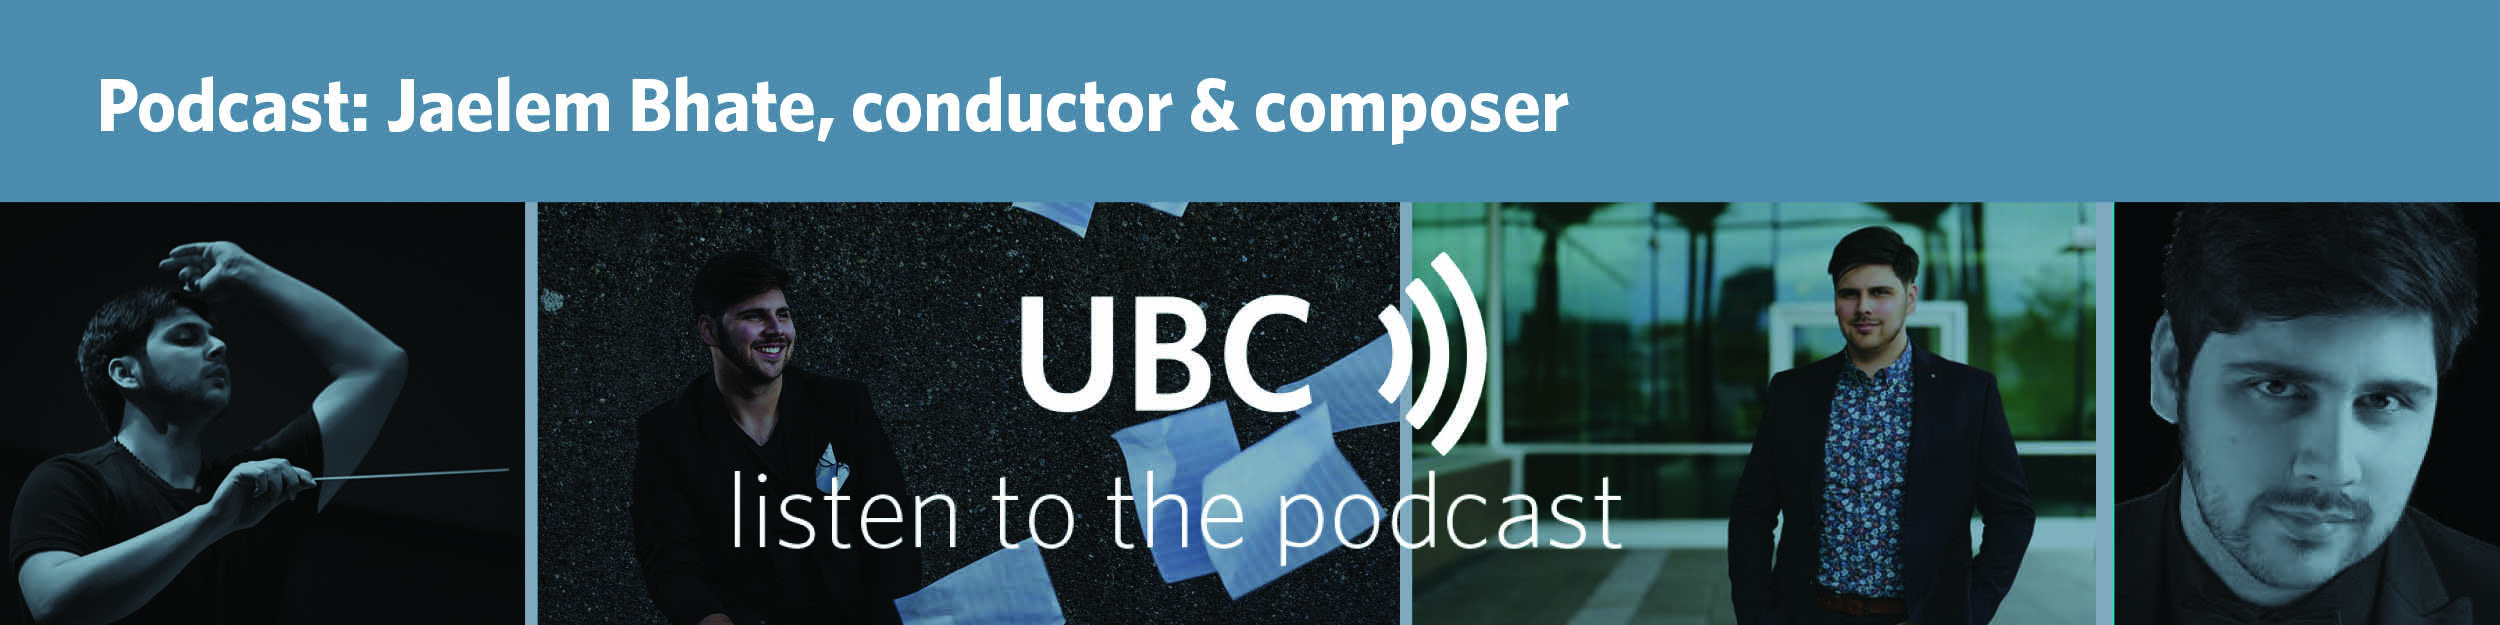 Podcast: Jaelem Bhate, conductor and composer